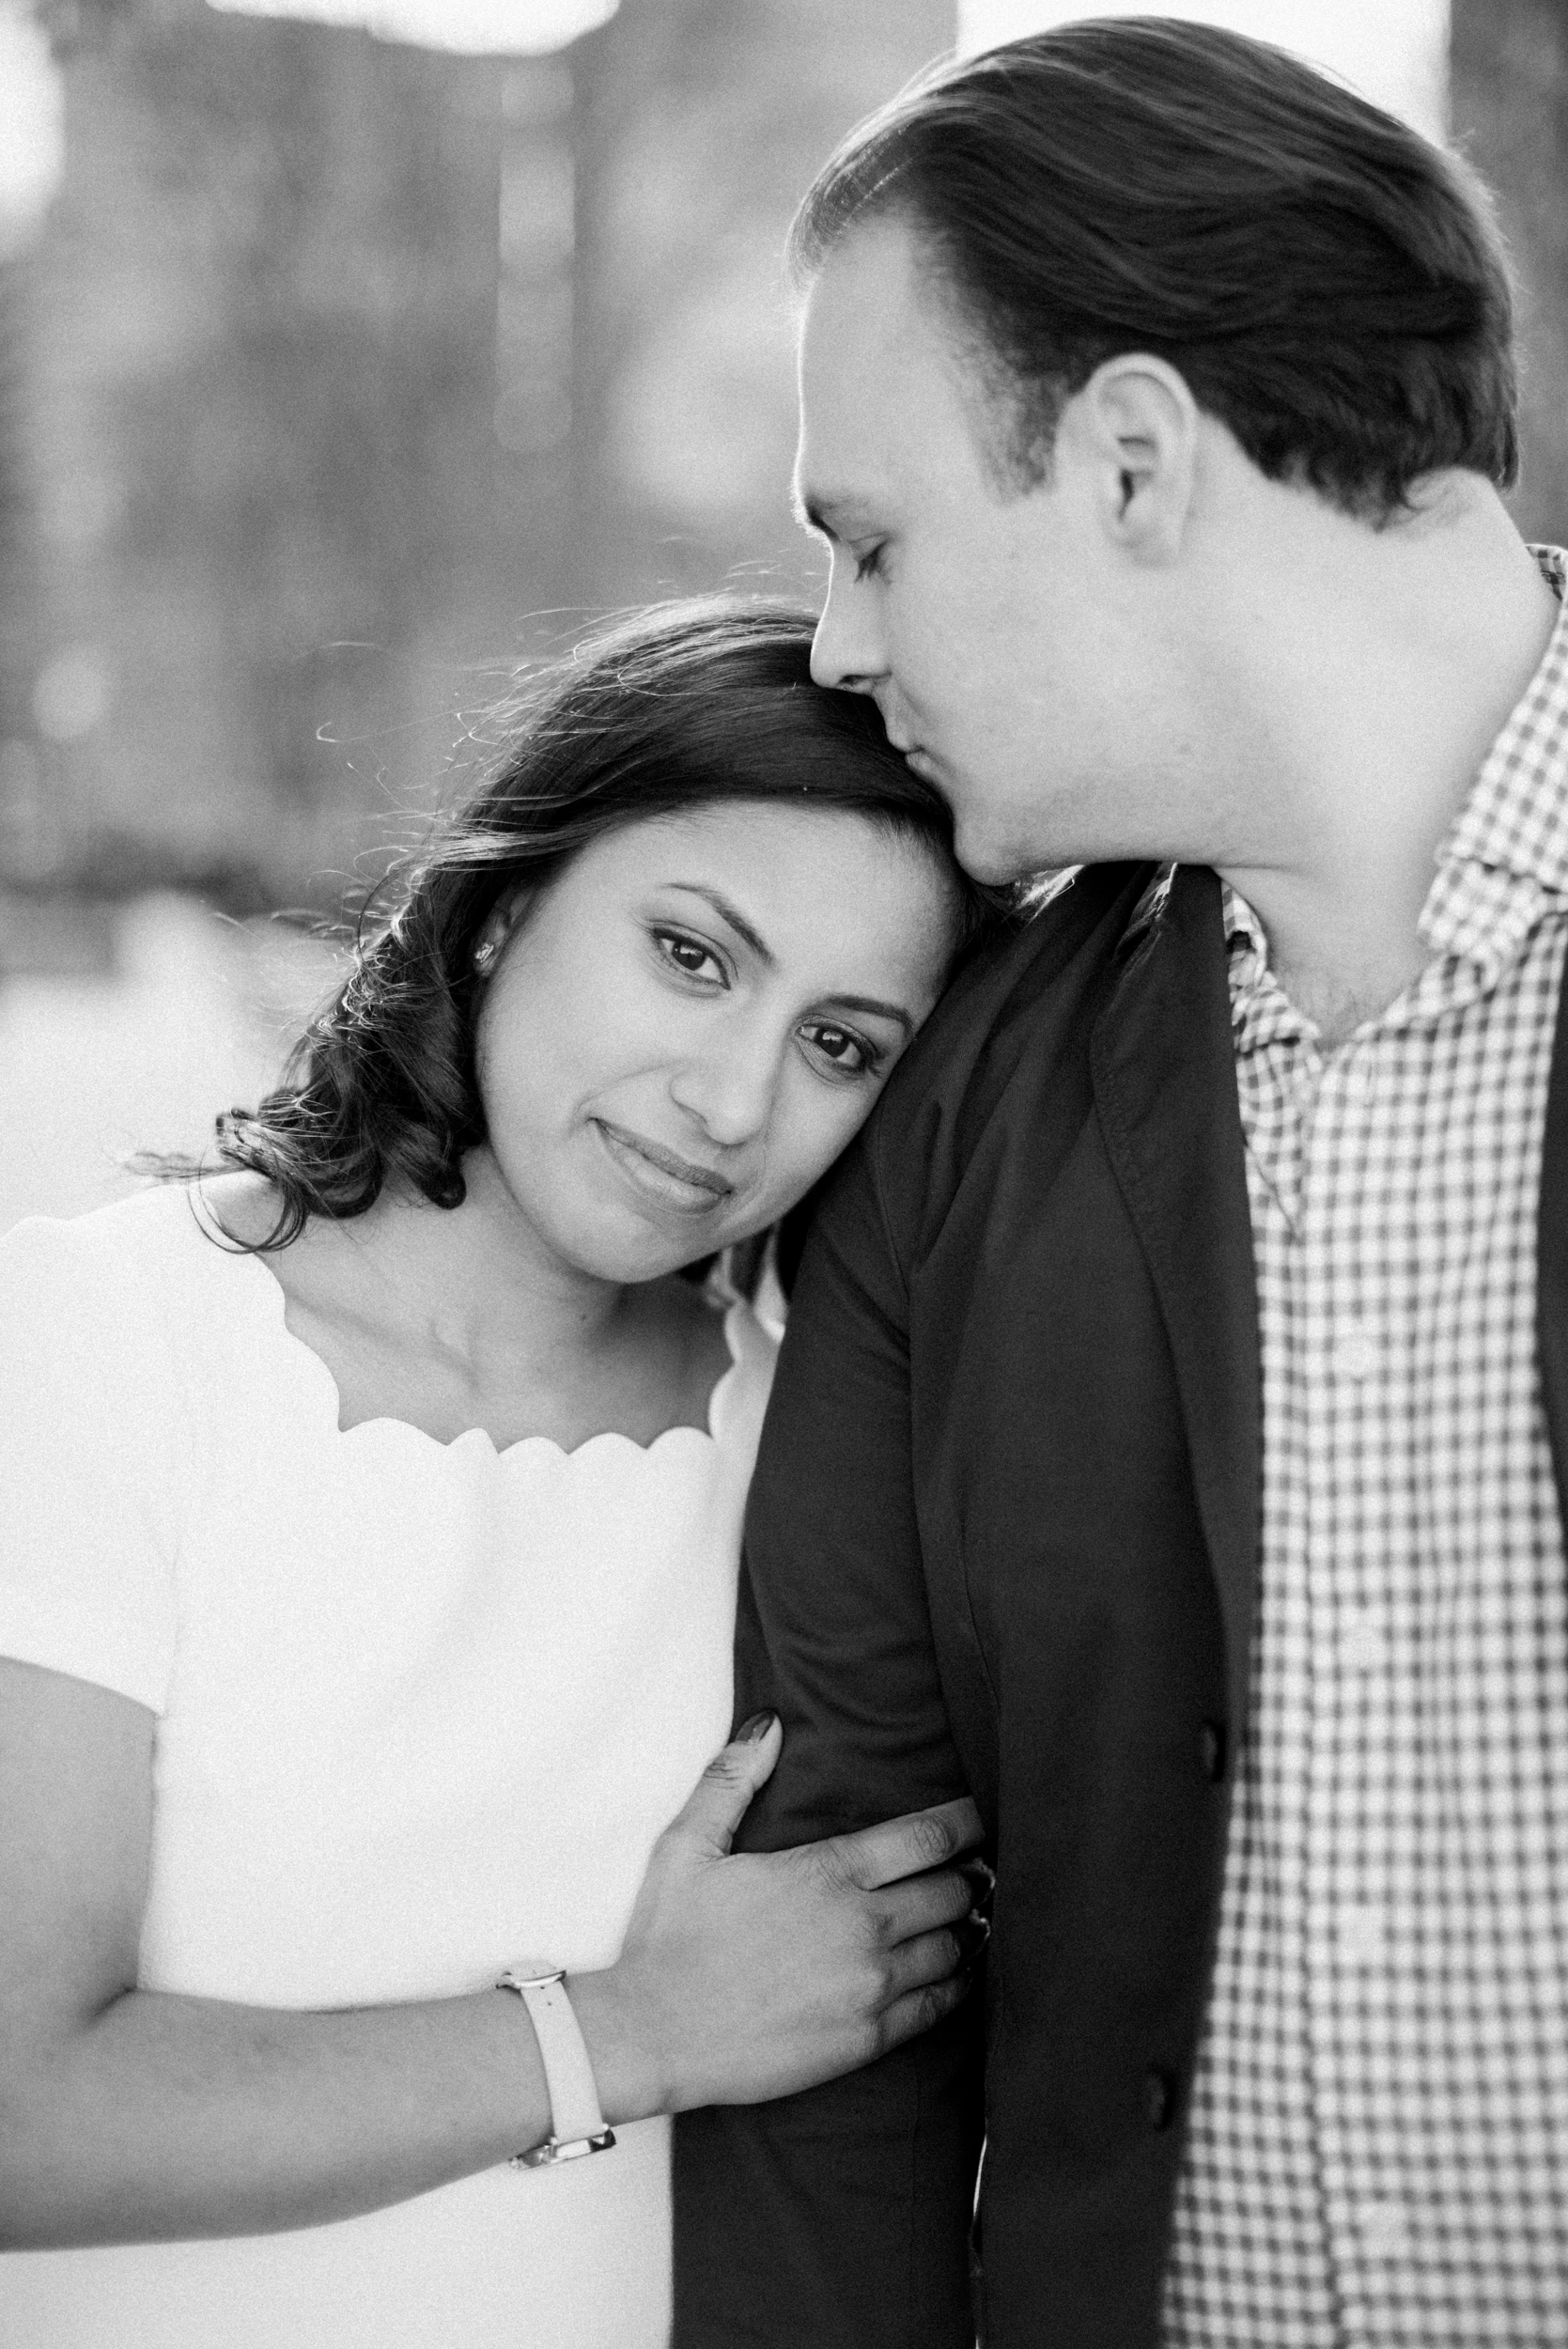 Destination Engagement Photography